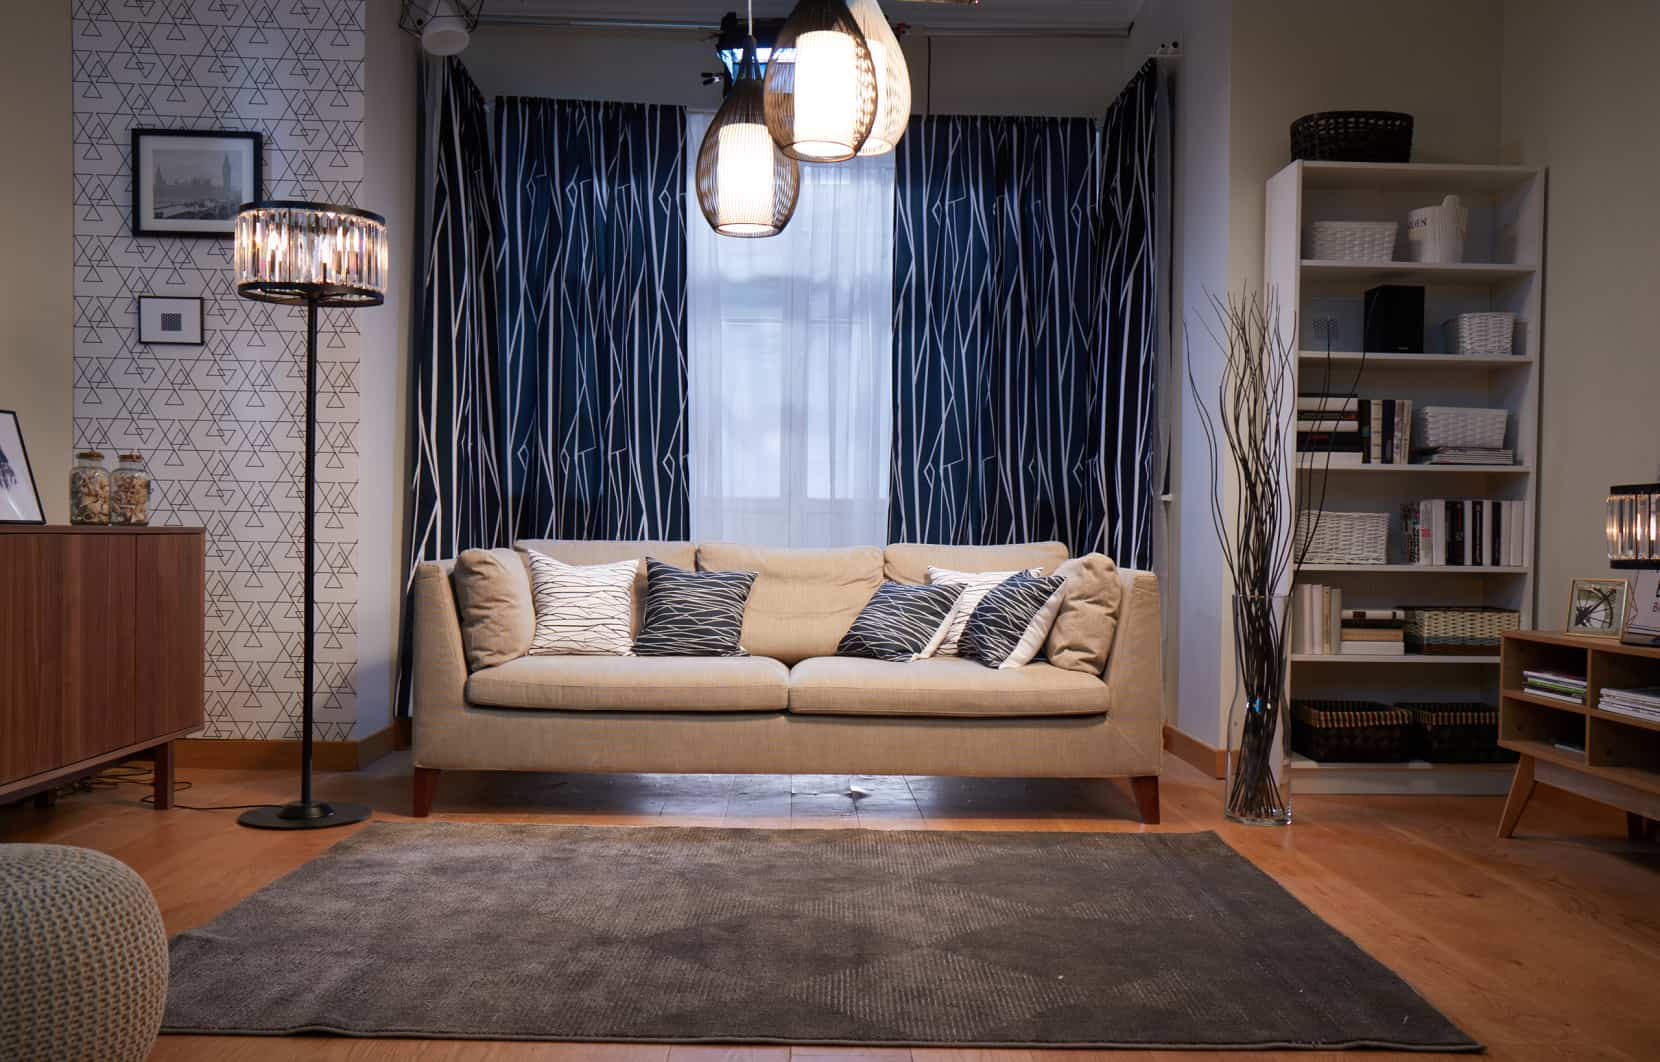 10 Tips for Cleaning a House You Have Inherited. Simple casual designed room with an order in things